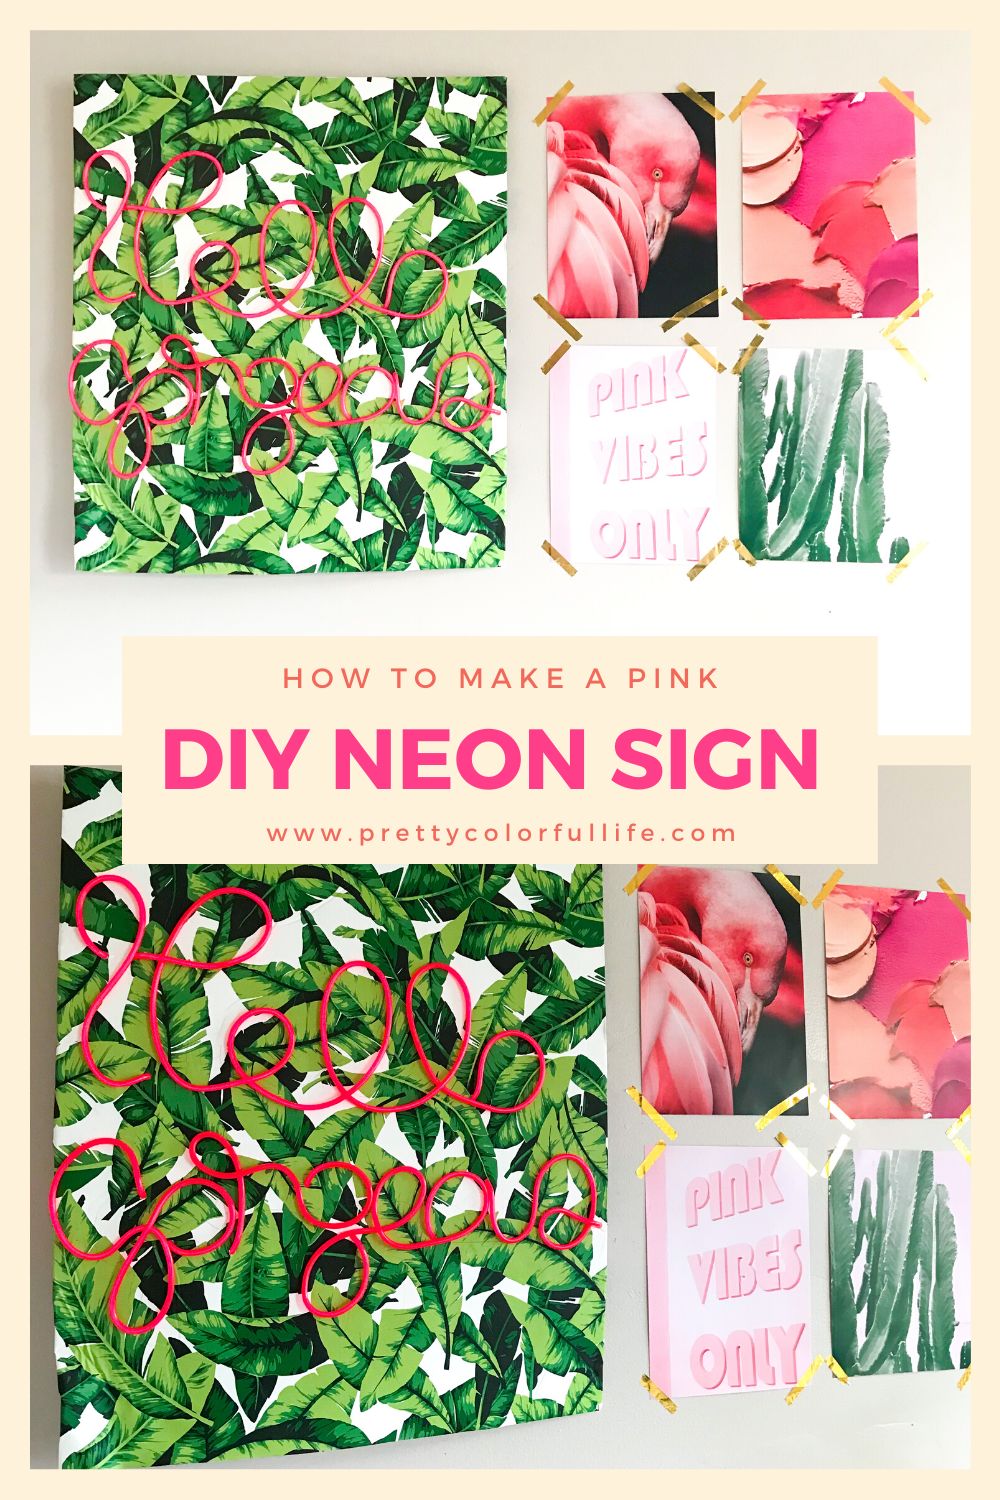 How To Make A Pink DIY Neon Sign in 2020 Diy neon sign